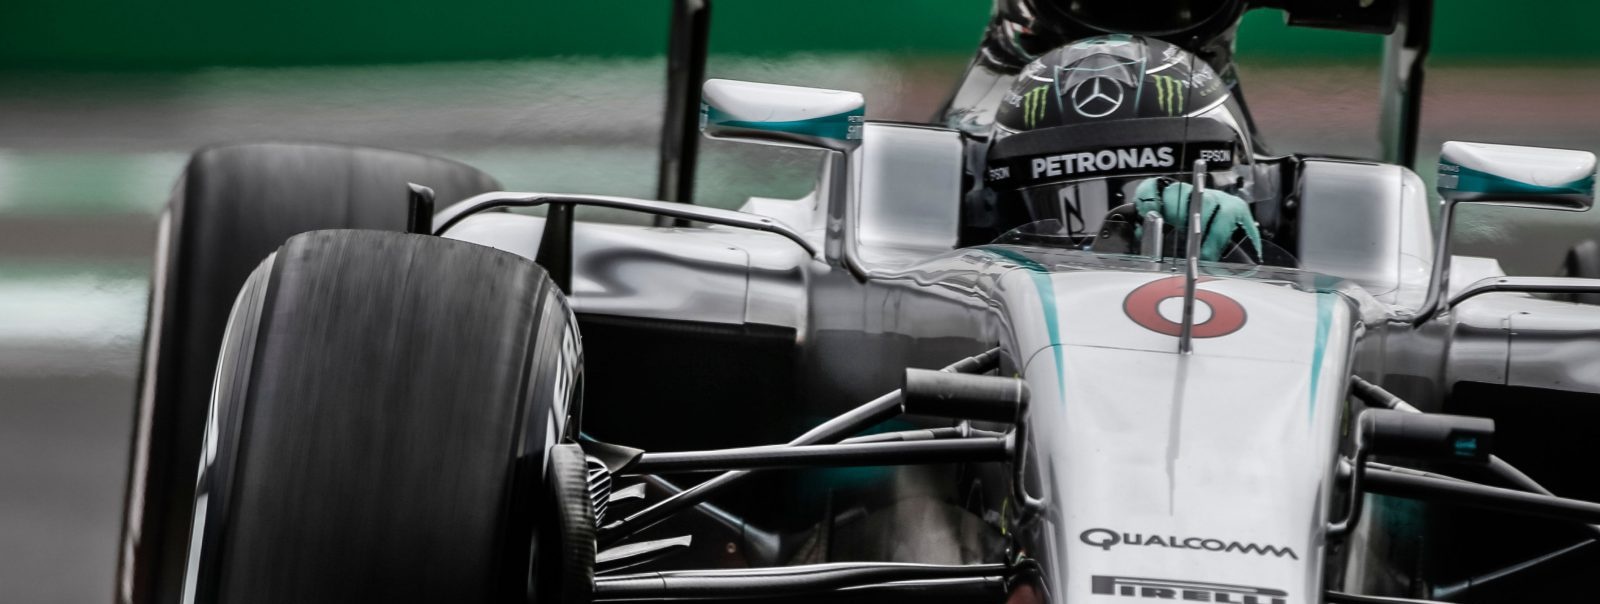 Motorsports: FIA Formula One World Championship 2016, Grand Prix of Mexico,  #6 Nico Rosberg (GER, Mercedes AMG Petronas Formula One Team),  *** Local Caption *** +++ www.hoch-zwei.net +++ copyright: HOCH ZWEI +++